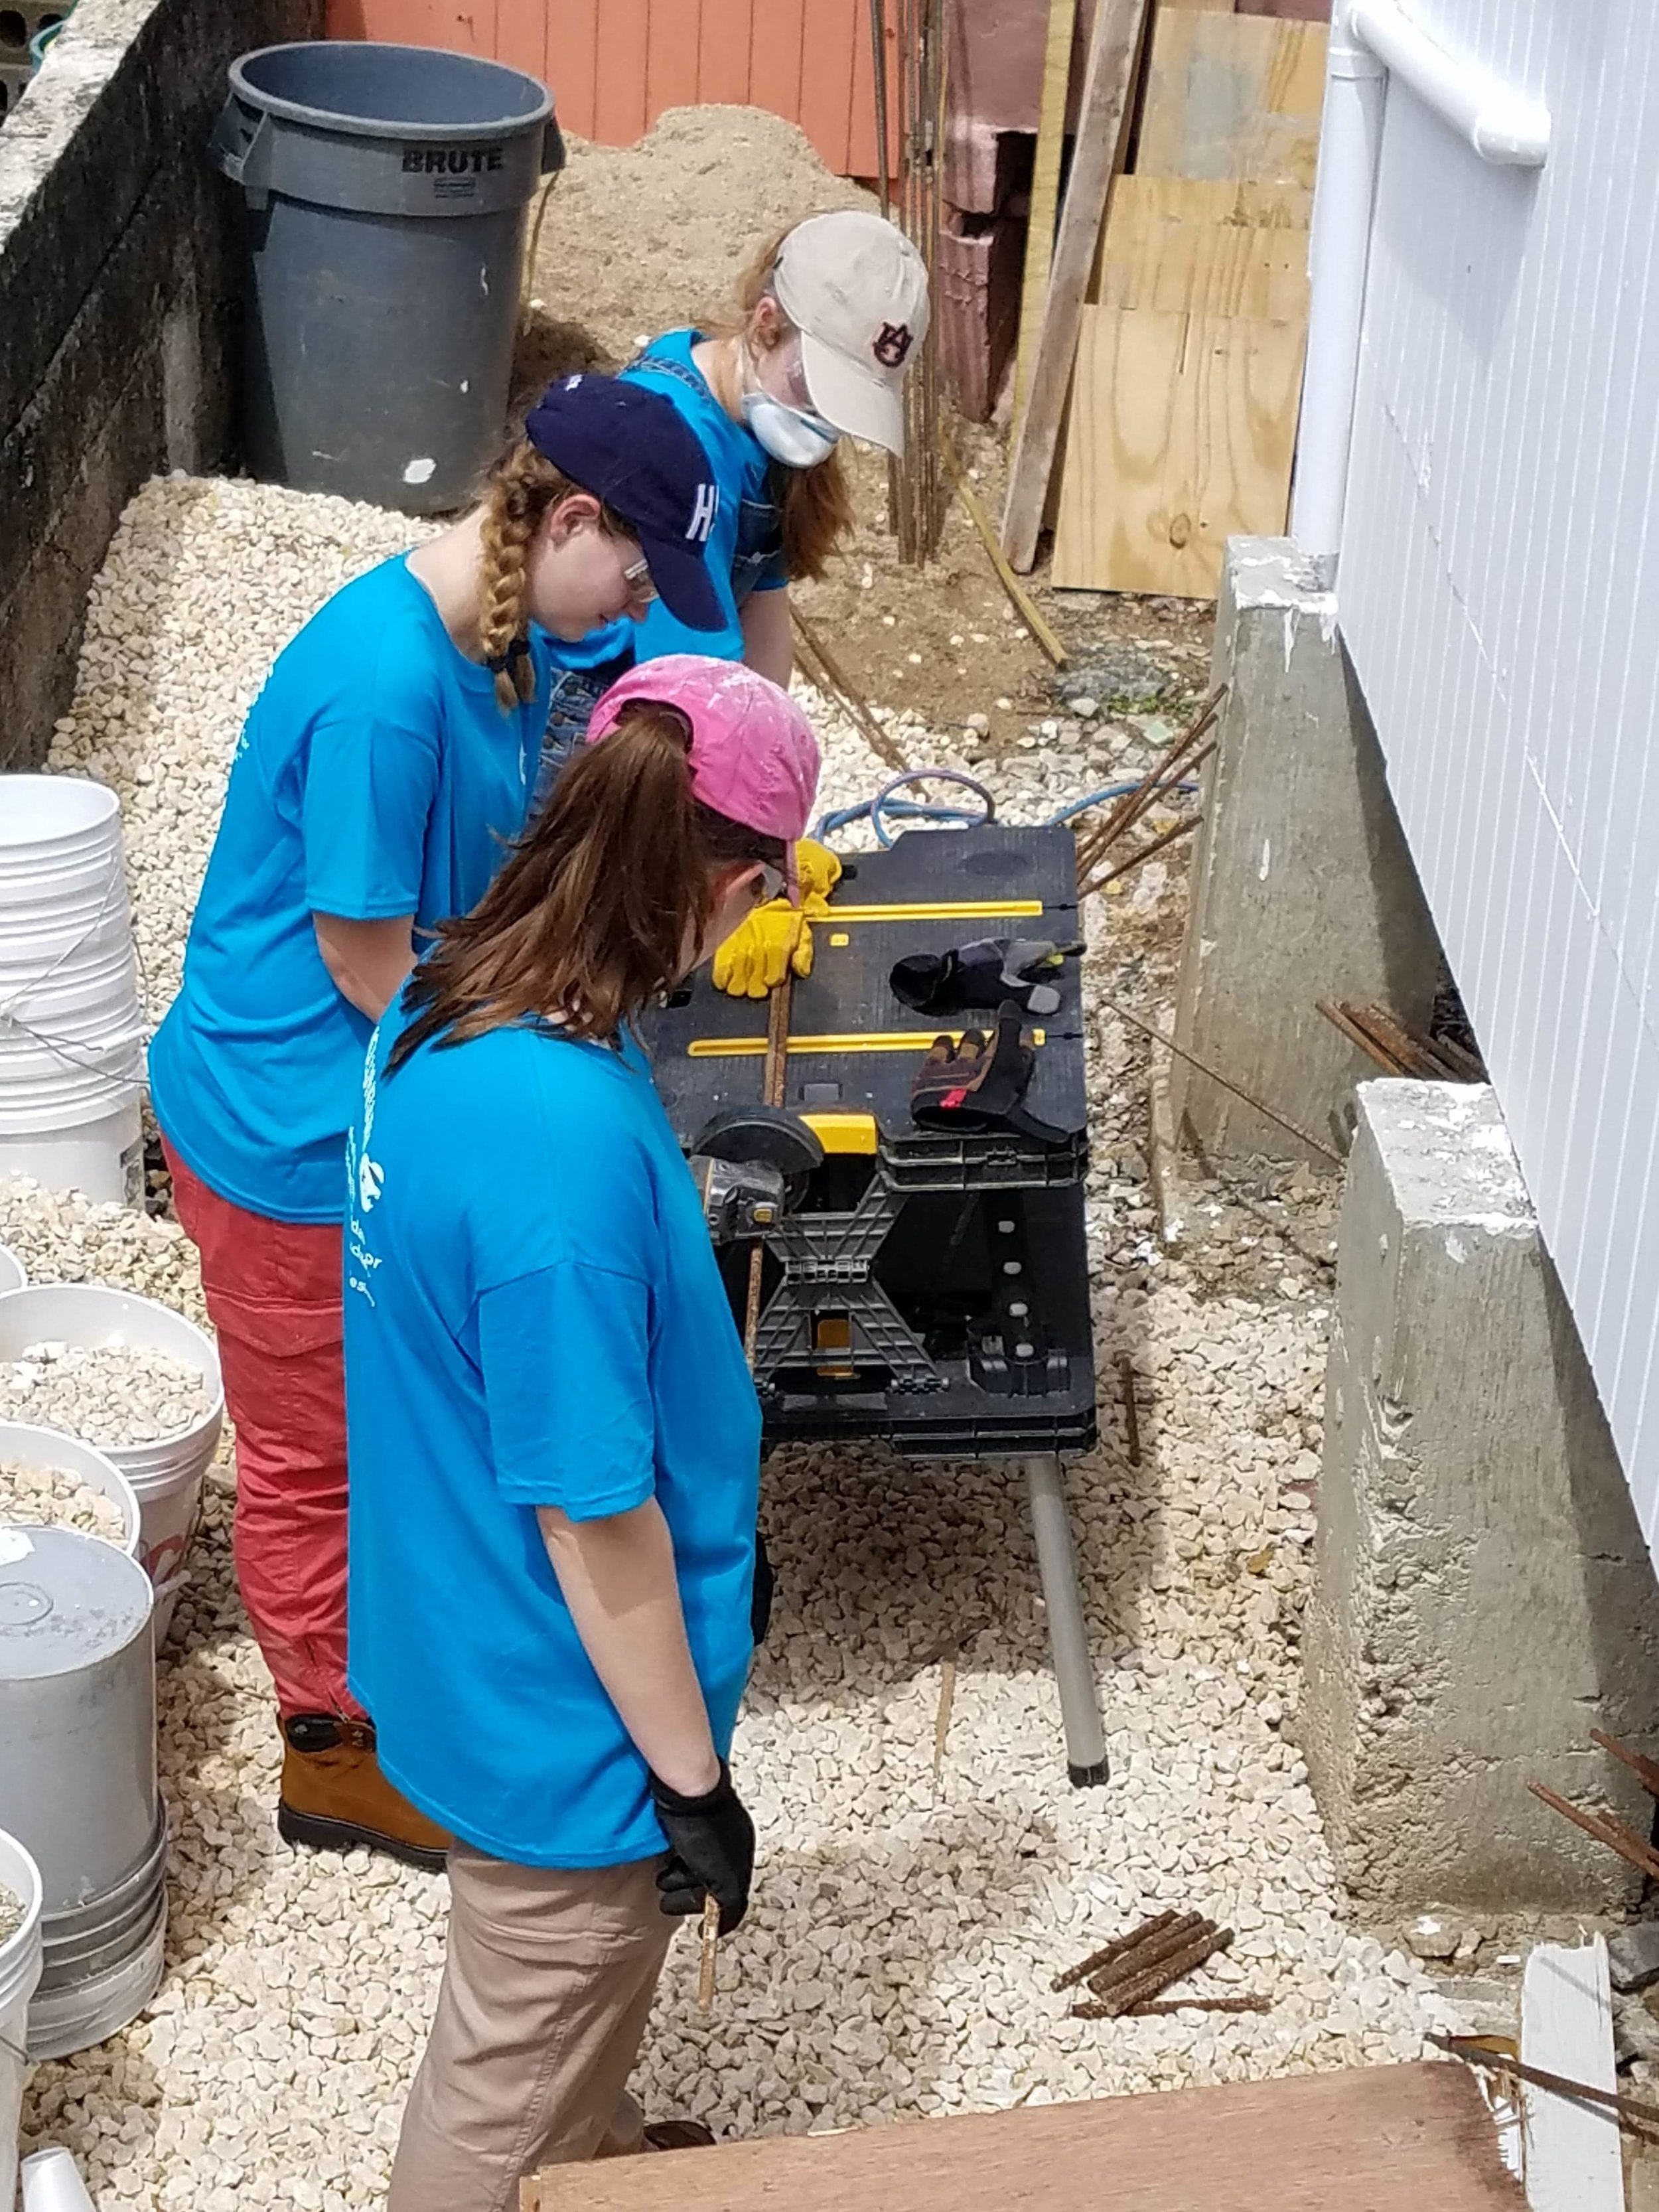 Bekah Wommack, Megan Kucera, and Sarah Jane Thompsonfrom Team 3 are shown cutting rebar. They spent most of the day sorting wood, rebarring, and doing a wide variety of other things.